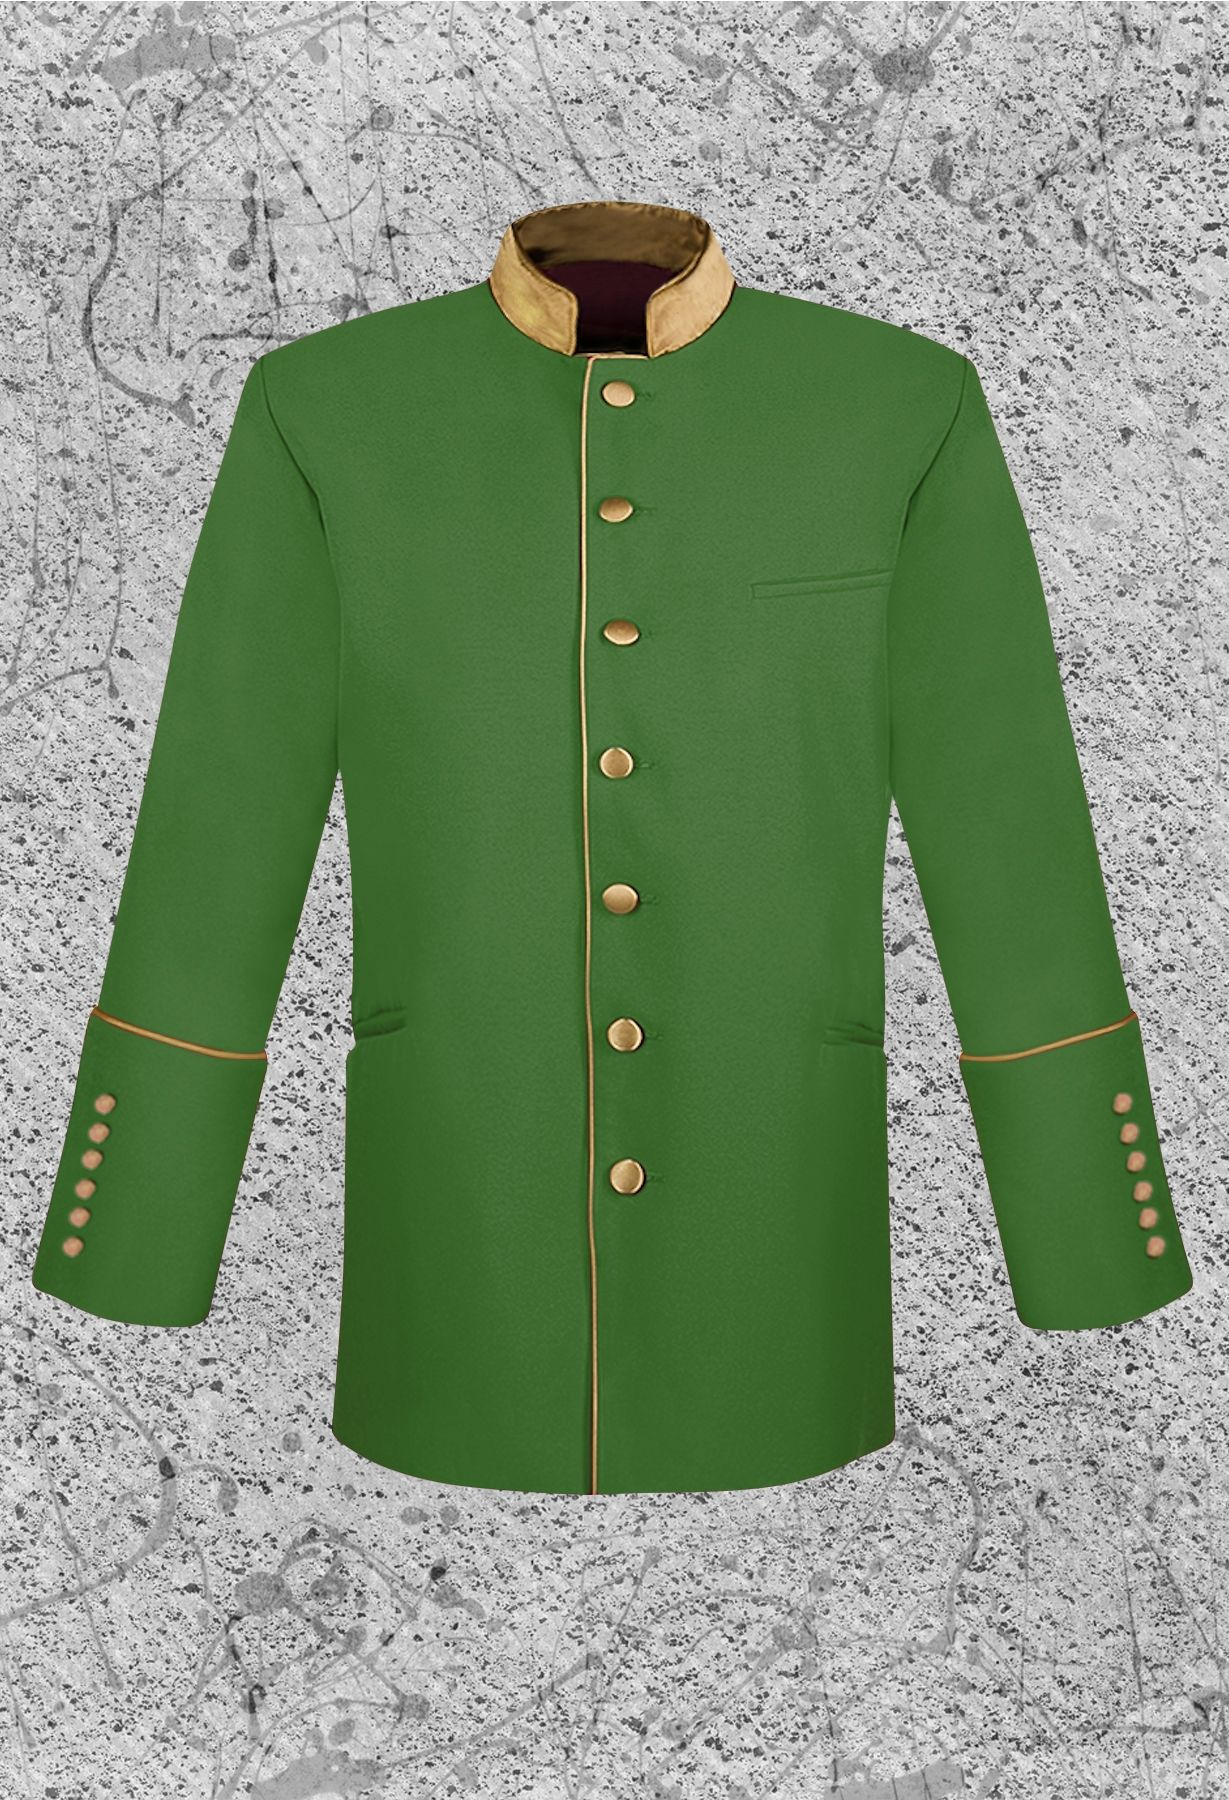 Men's Green and Gold Clergy Jacket